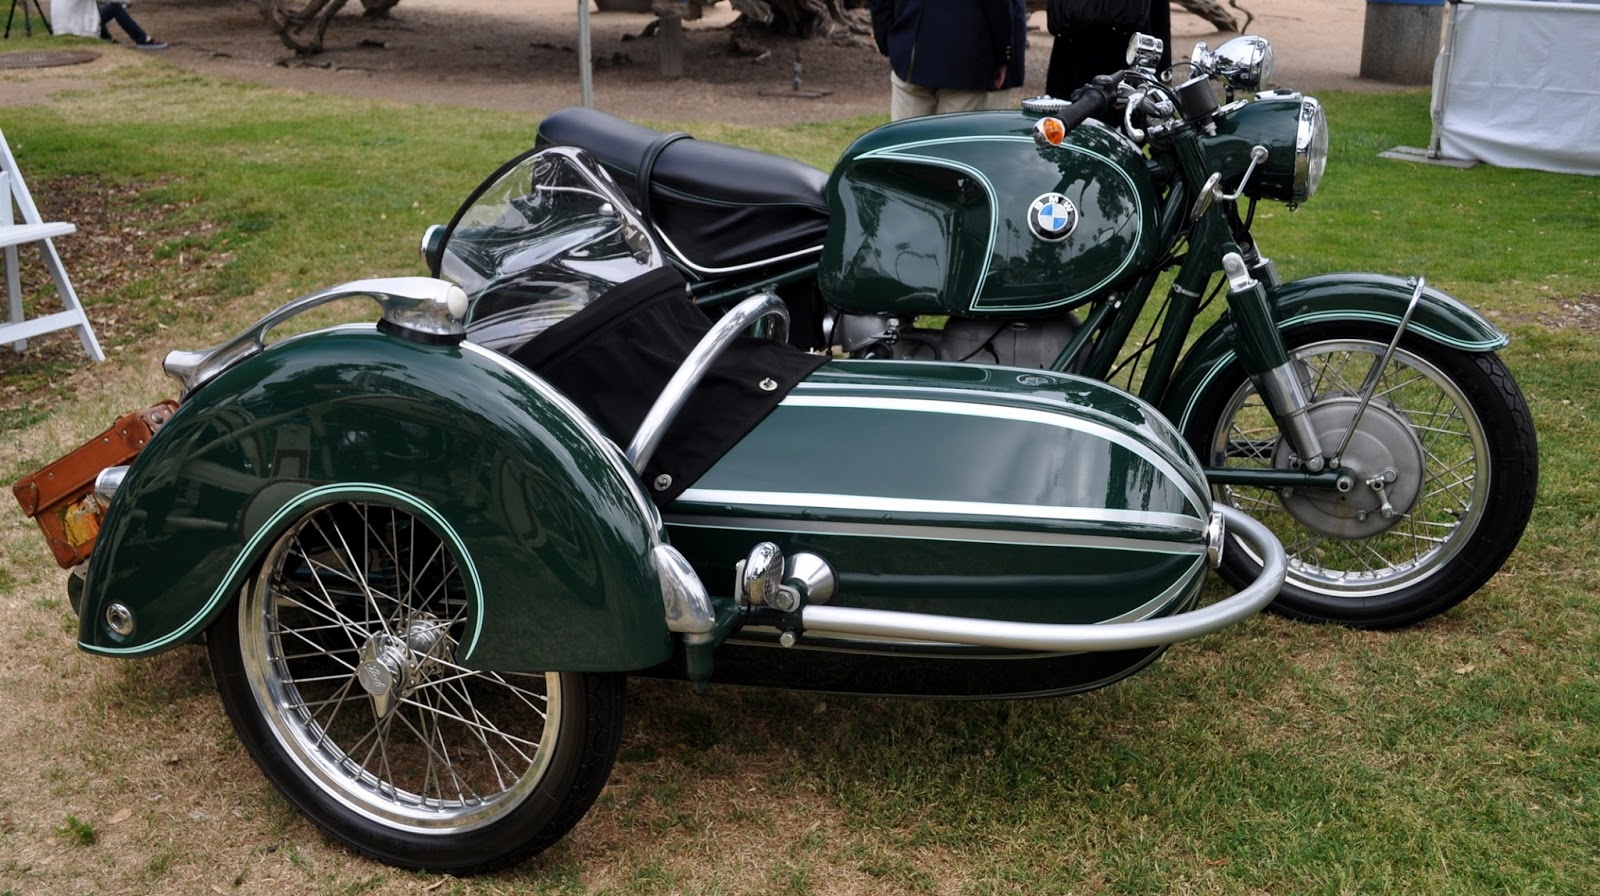 1968 bmw r60 2 with a steib s350 sport chair sidecar. Black Bedroom Furniture Sets. Home Design Ideas